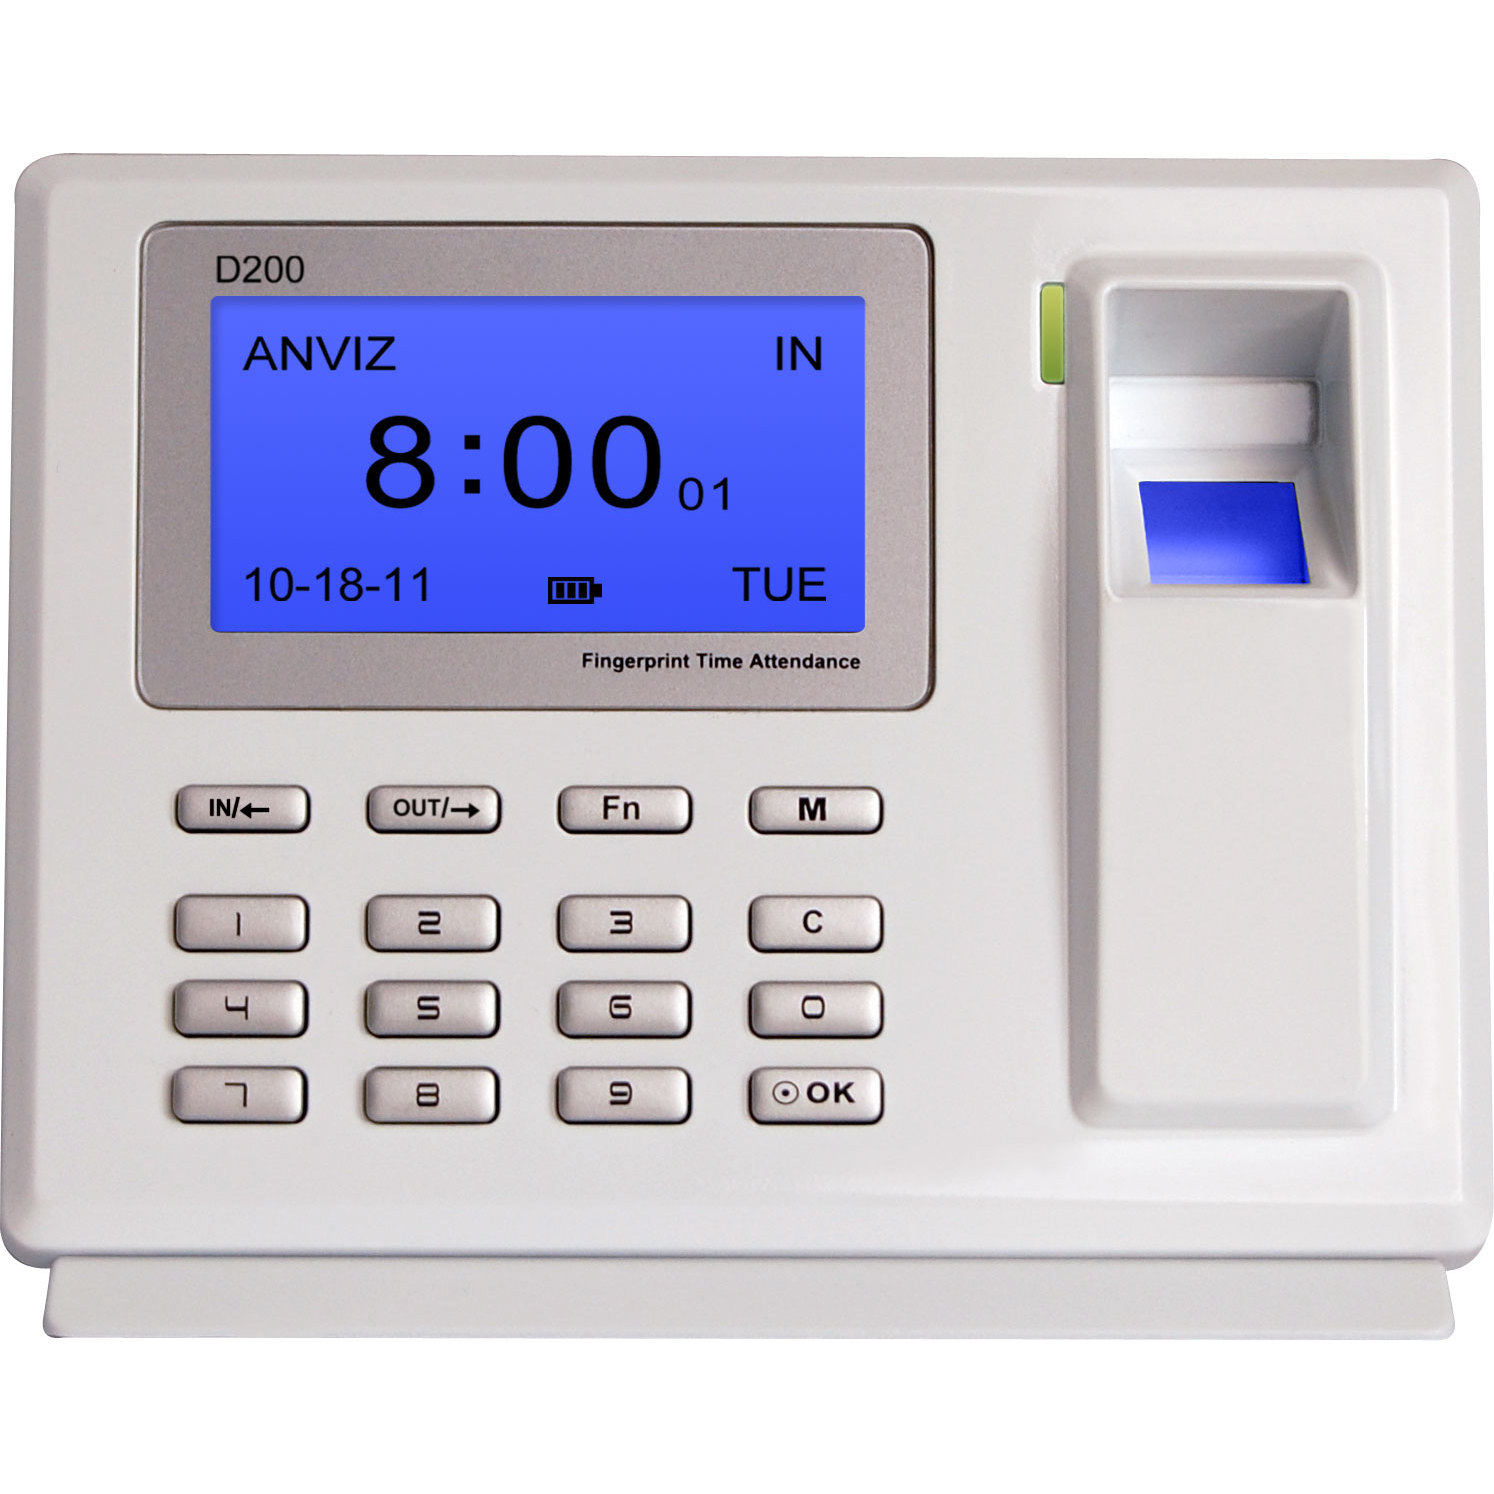 Anviz D200 Checkpoint Terminal Presence Footprint Connection Checkpoint USB Schedules, Shifts And Cycles